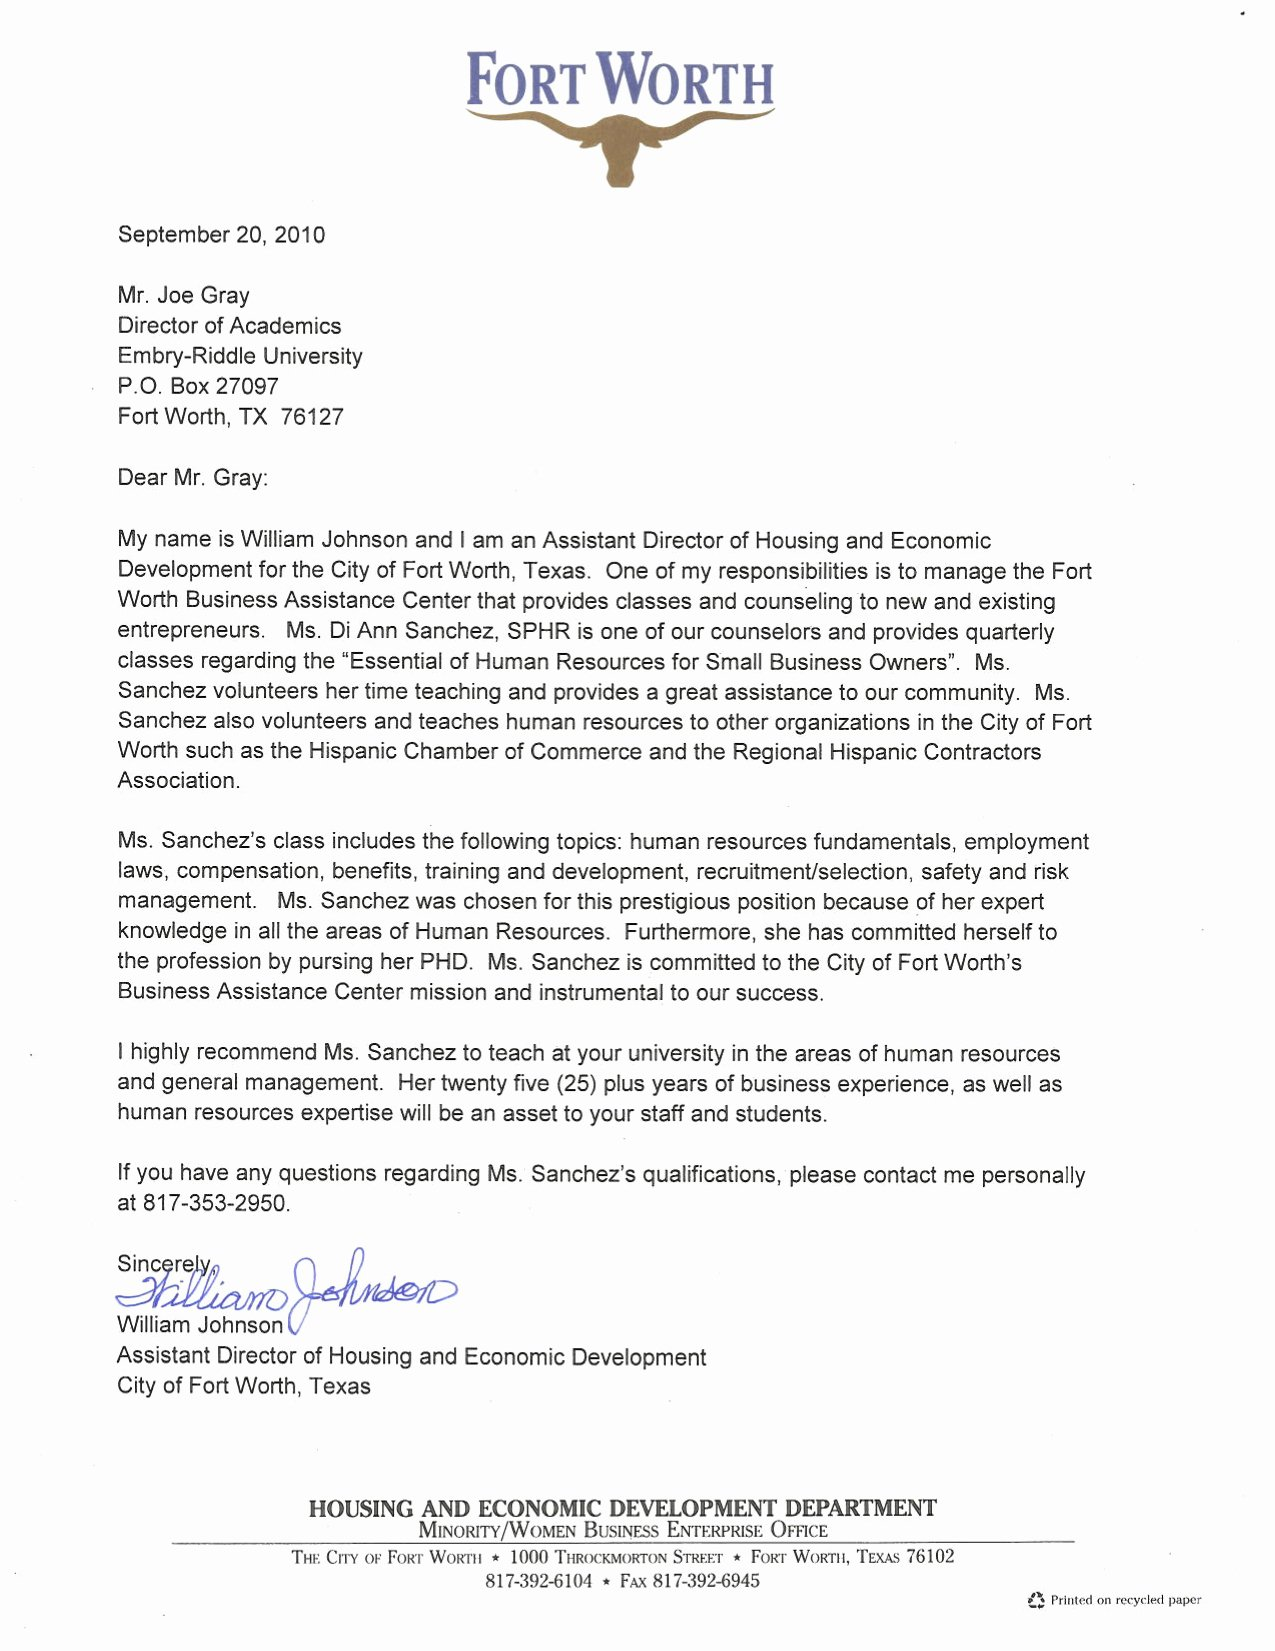 Letter Of Recommendation for Professorship Luxury Testimonials Das Hr Consulting